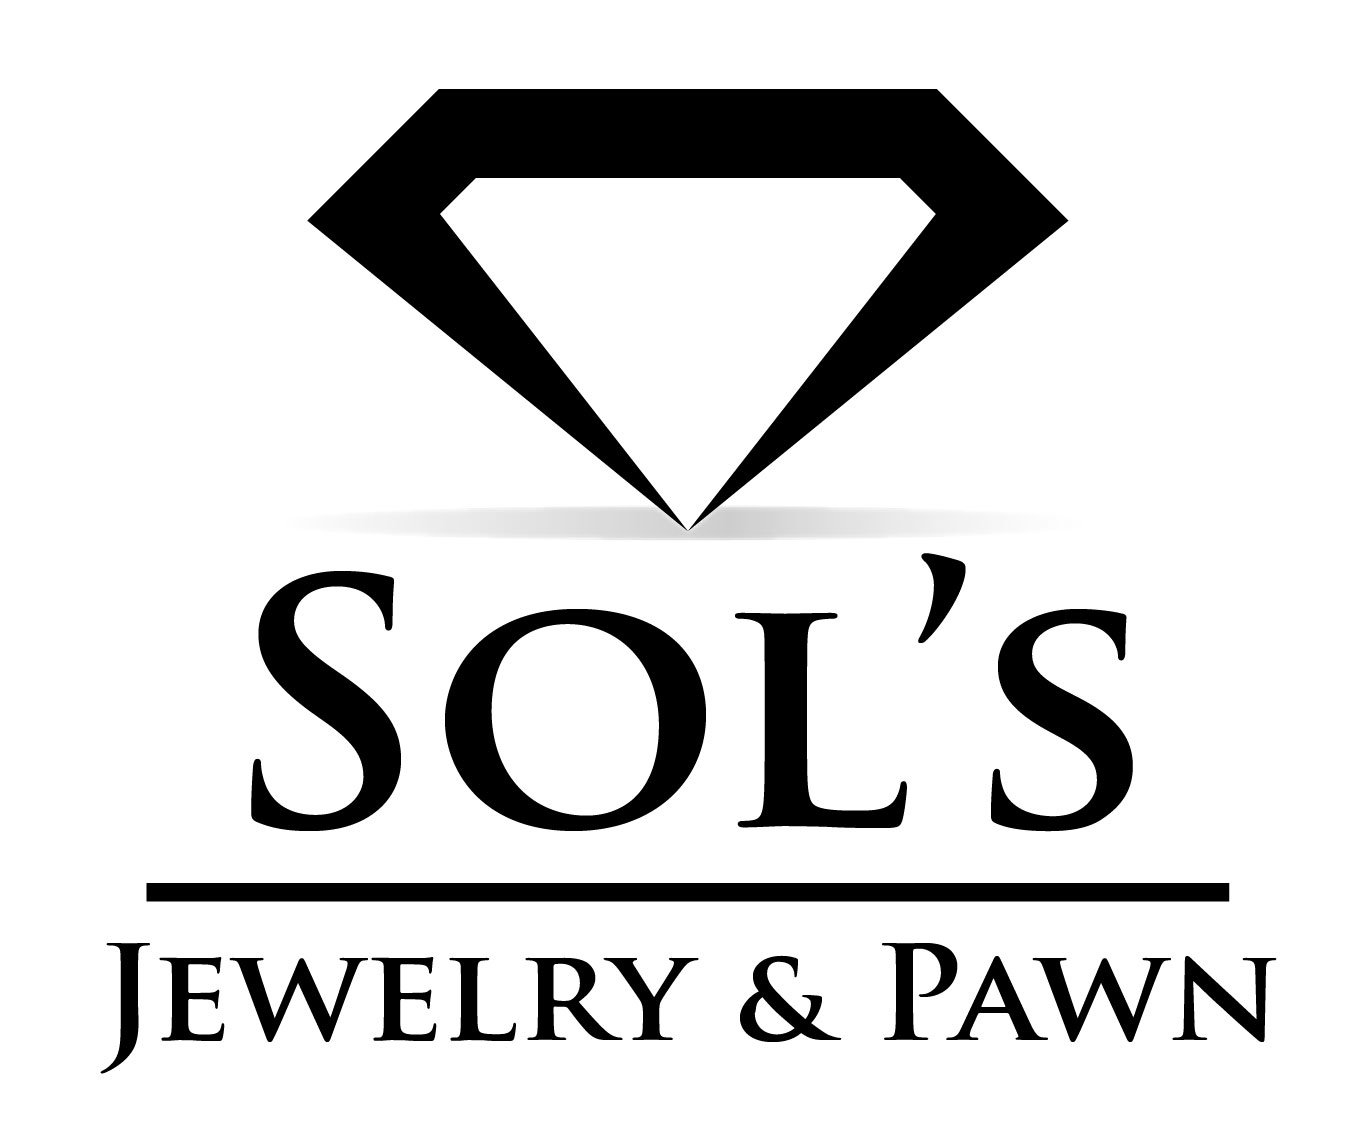 Reasons to Buy Jewelry from a Pawn Shop